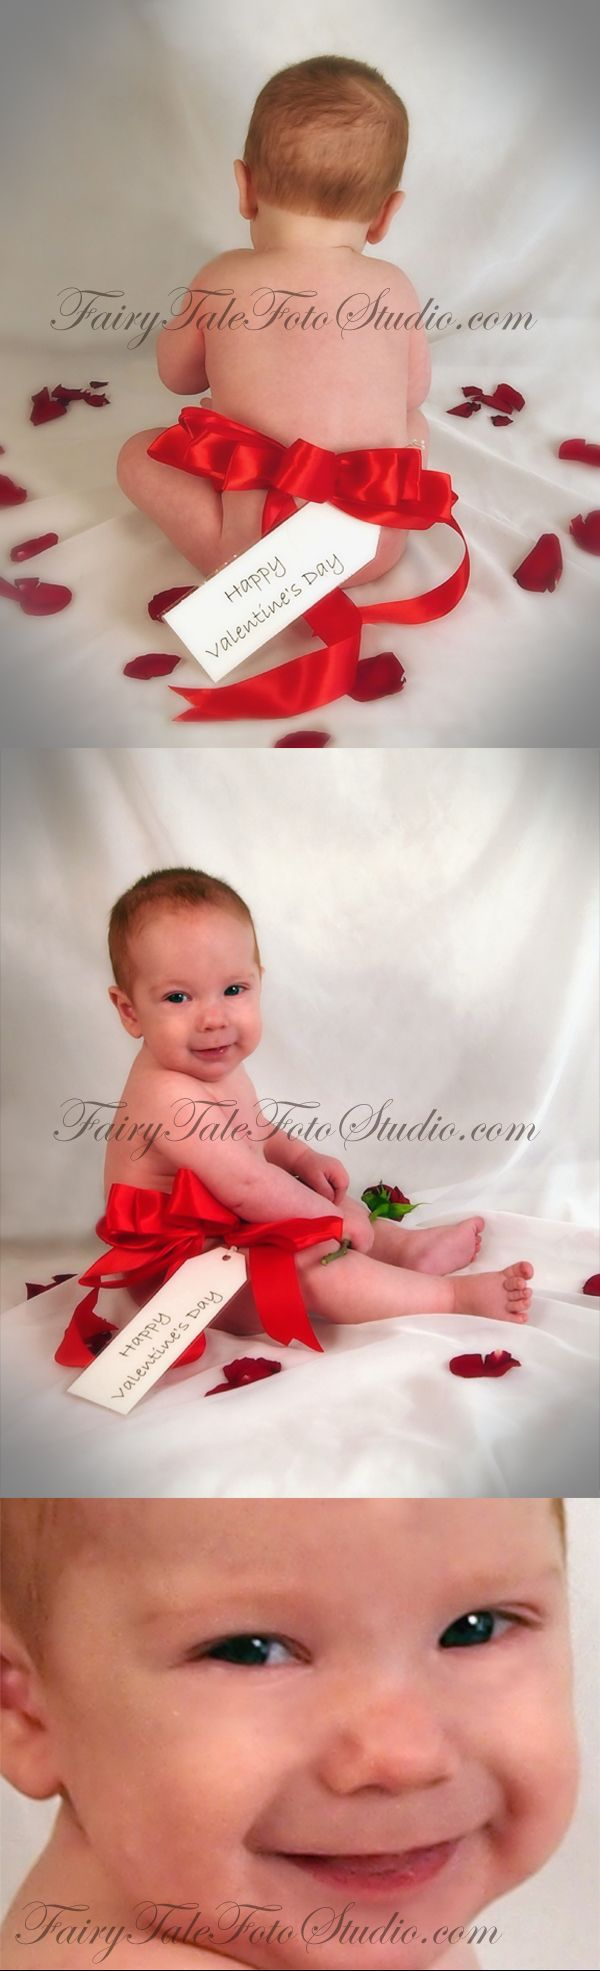 just kids photography: happy valentine's day baby bow: 3 month old, Ideas